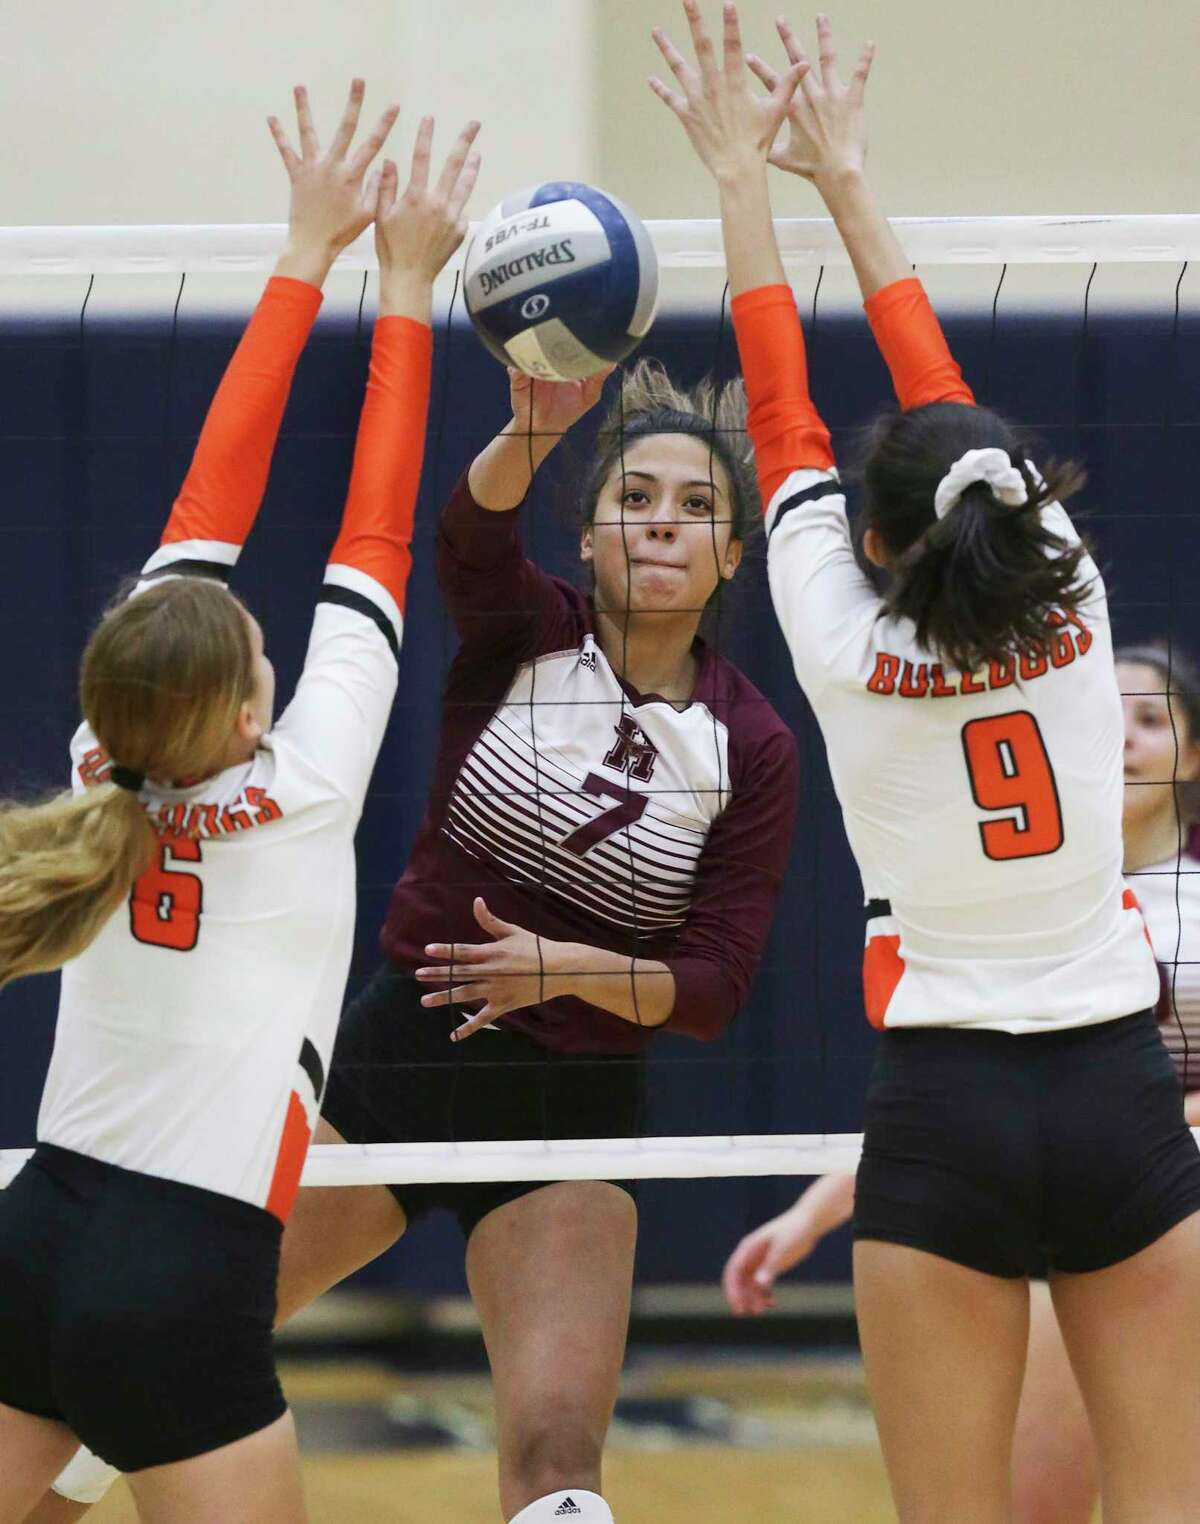 The Owls' Briana Contreras fires a shot through the defense as Burbank beats Highlands 3-1 in volleyball at the alamo Convocation Center on Sept. 24, 2019.